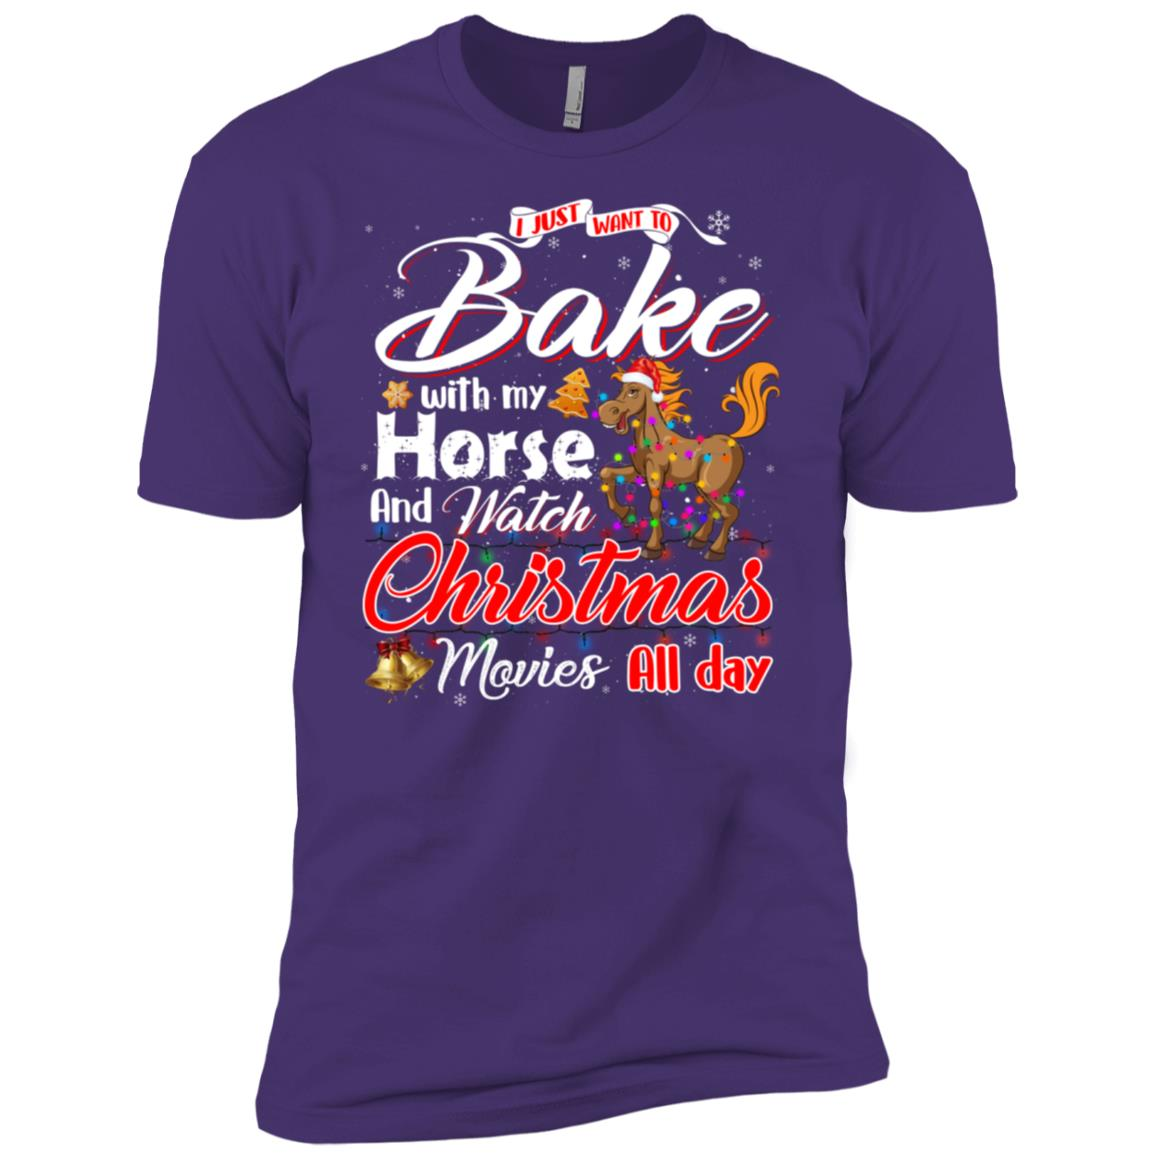 Bake Stuff with Horse And Watch Christmas Movies Men Short Sleeve T-Shirt